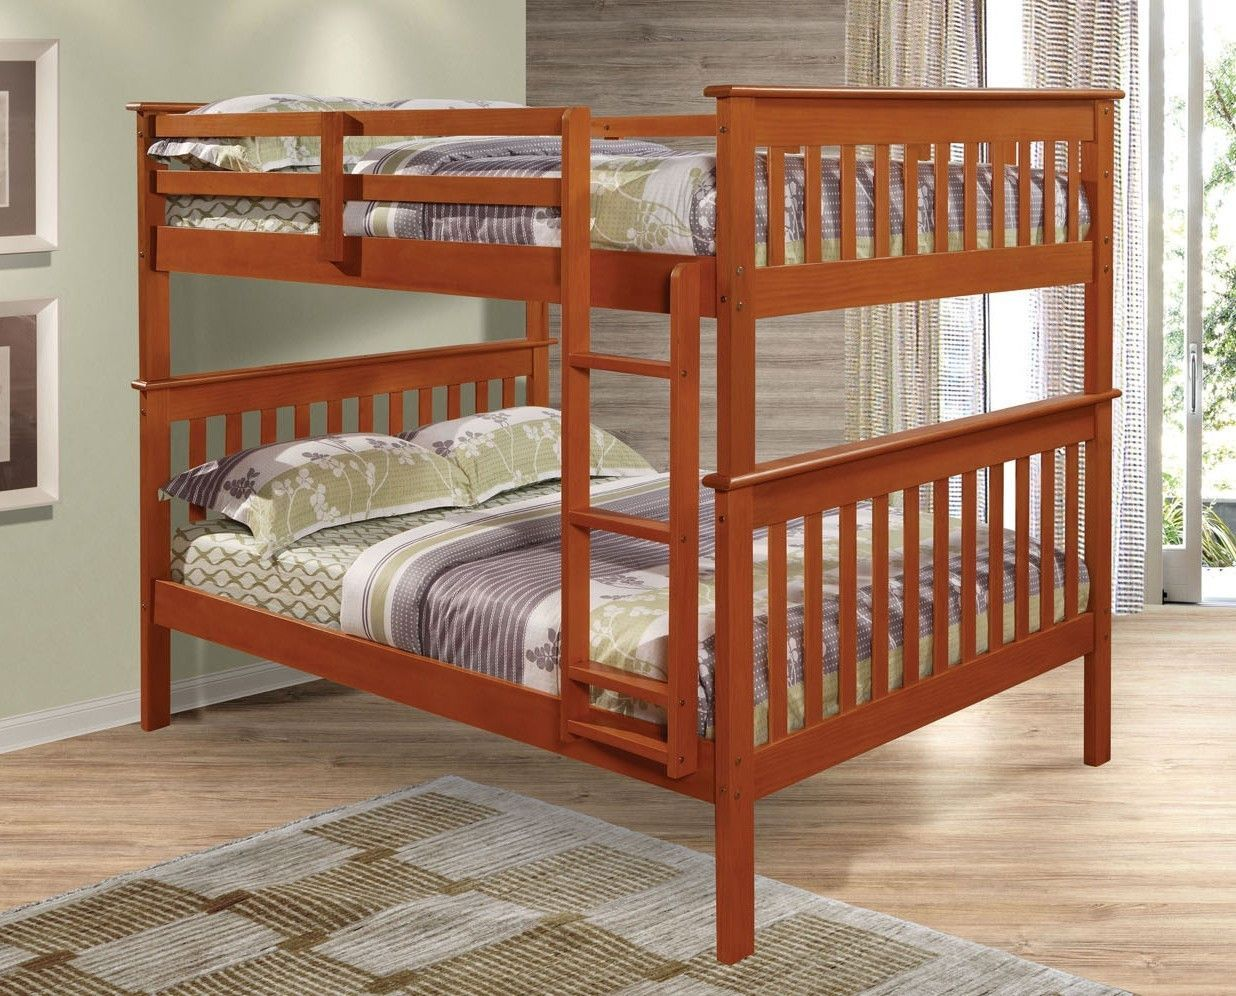 Loft bed ideas  Zachary Full over Full Espresso Bunk Beds  Full bunk beds Bunk bed